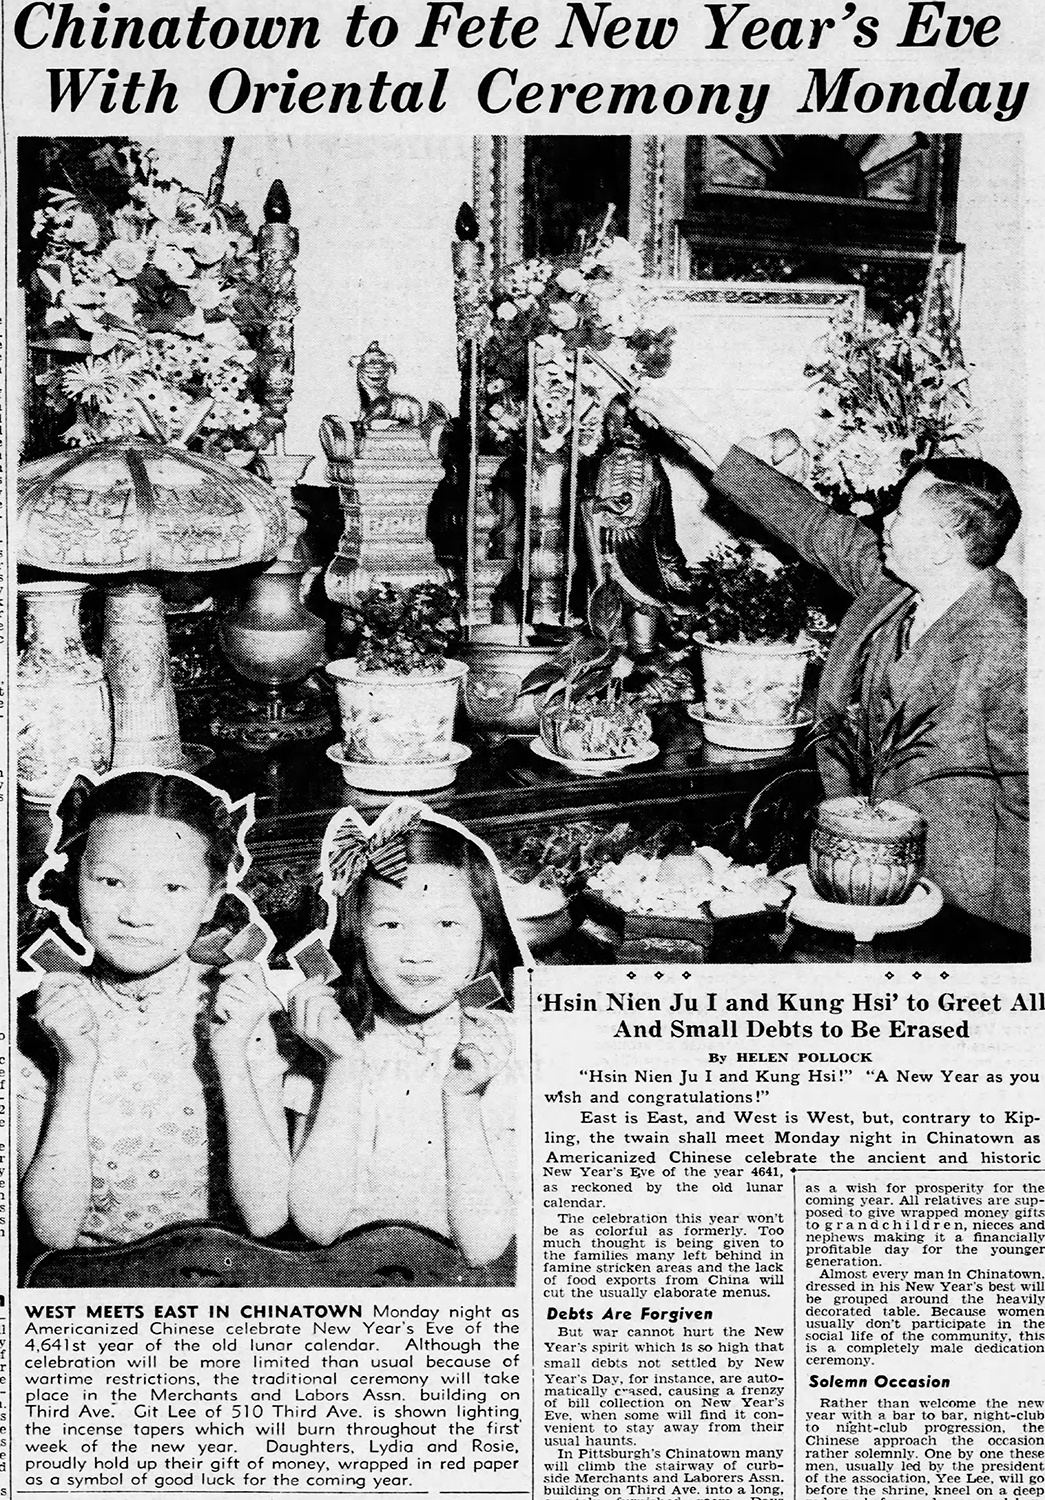 Git Lee (right) and daughters Lydia and Rosie featured in an article about Chinese Lunar New Year, 1944. The Pittsburgh Press, Jan. 22, 1944.